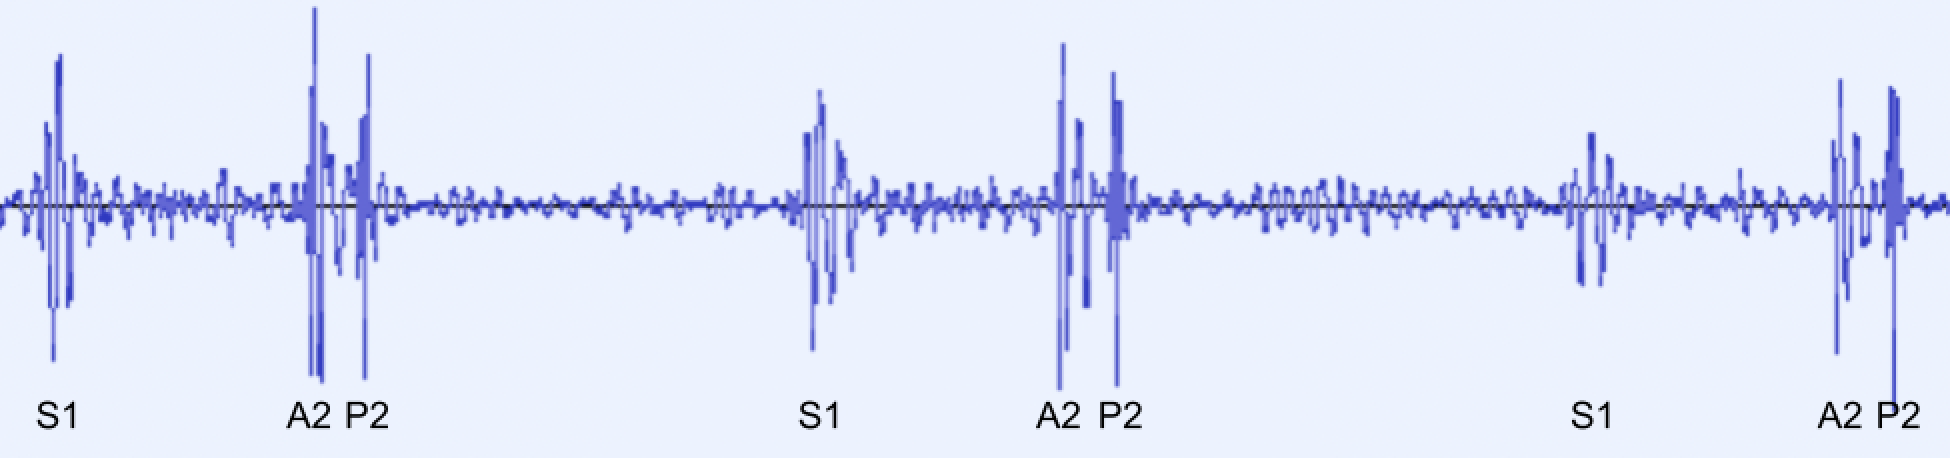 Lower Panel: A PCG showing the second heart sound (S2) splitting into separate aortic (A2) and pulmonic (P2) sounds. The first heart sound (S1) is not split.